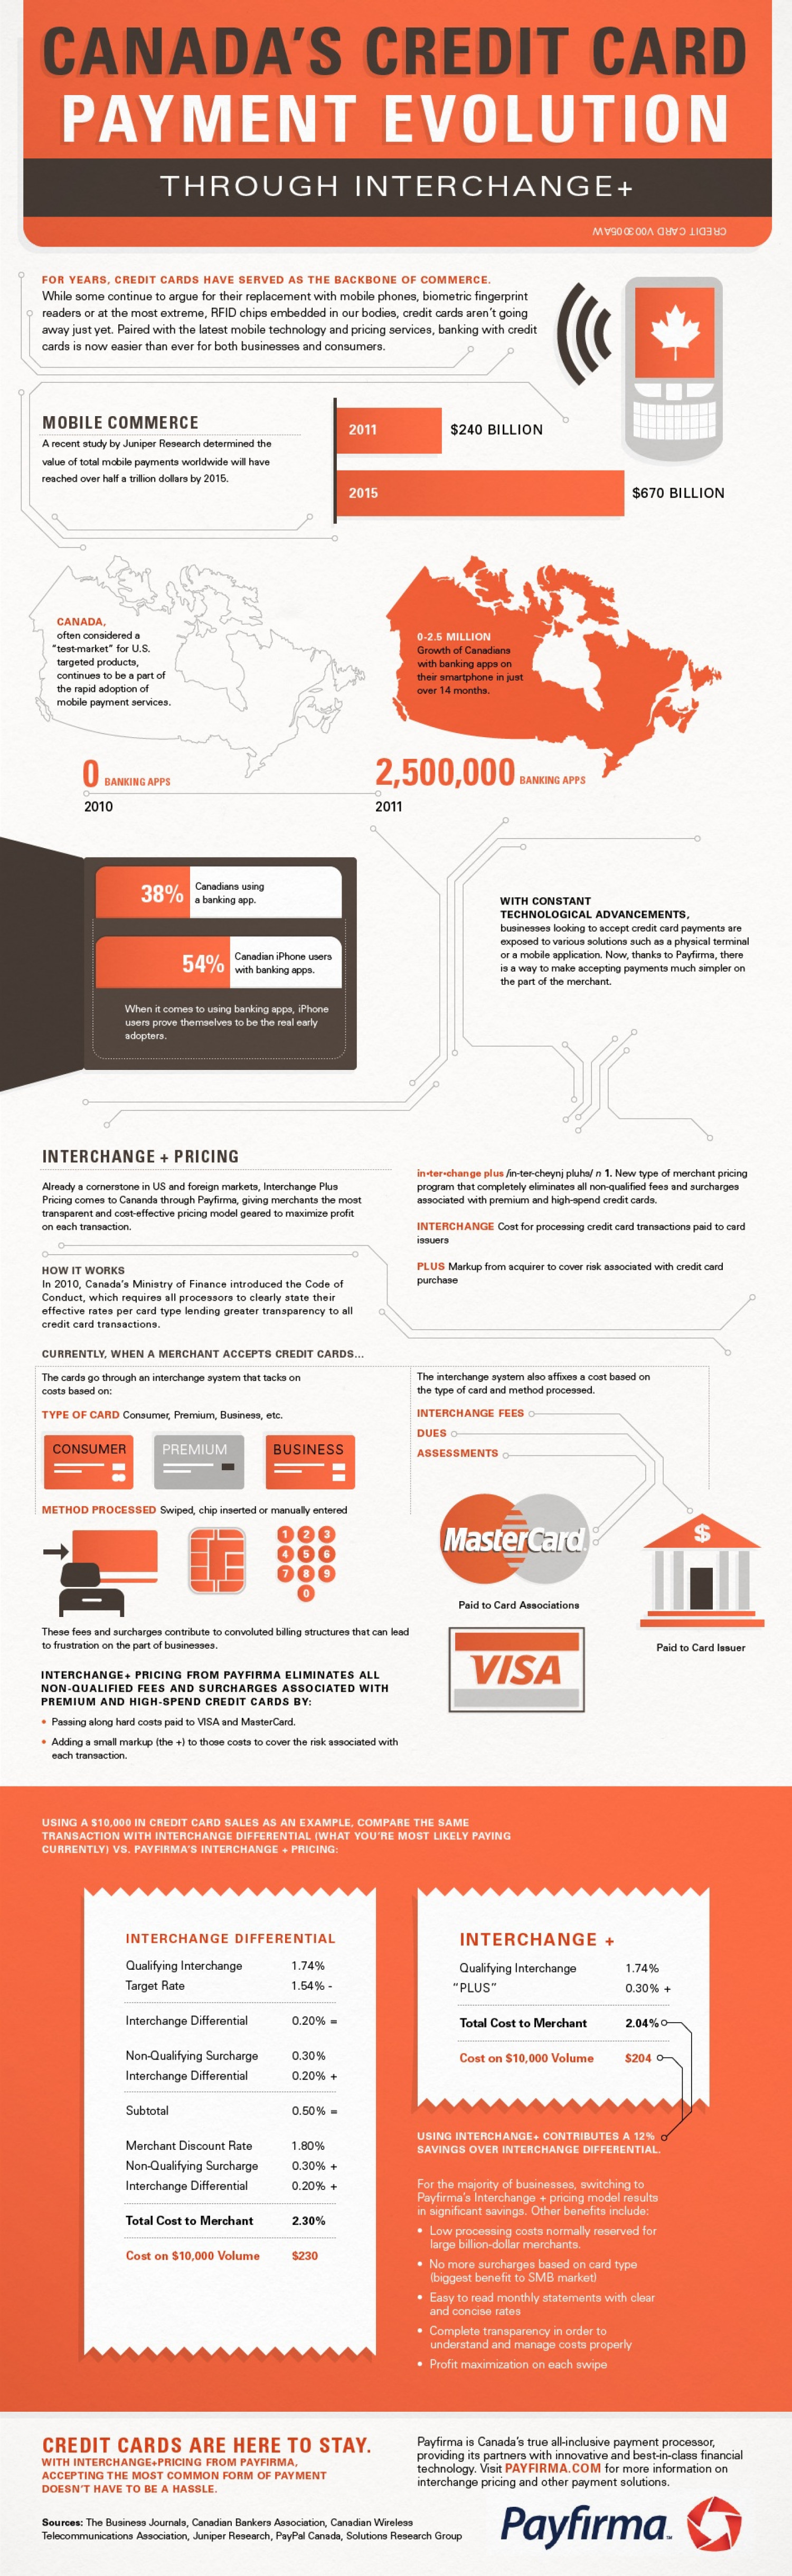 Canada's Credit Card Evolution Through Interchange+ Infographic